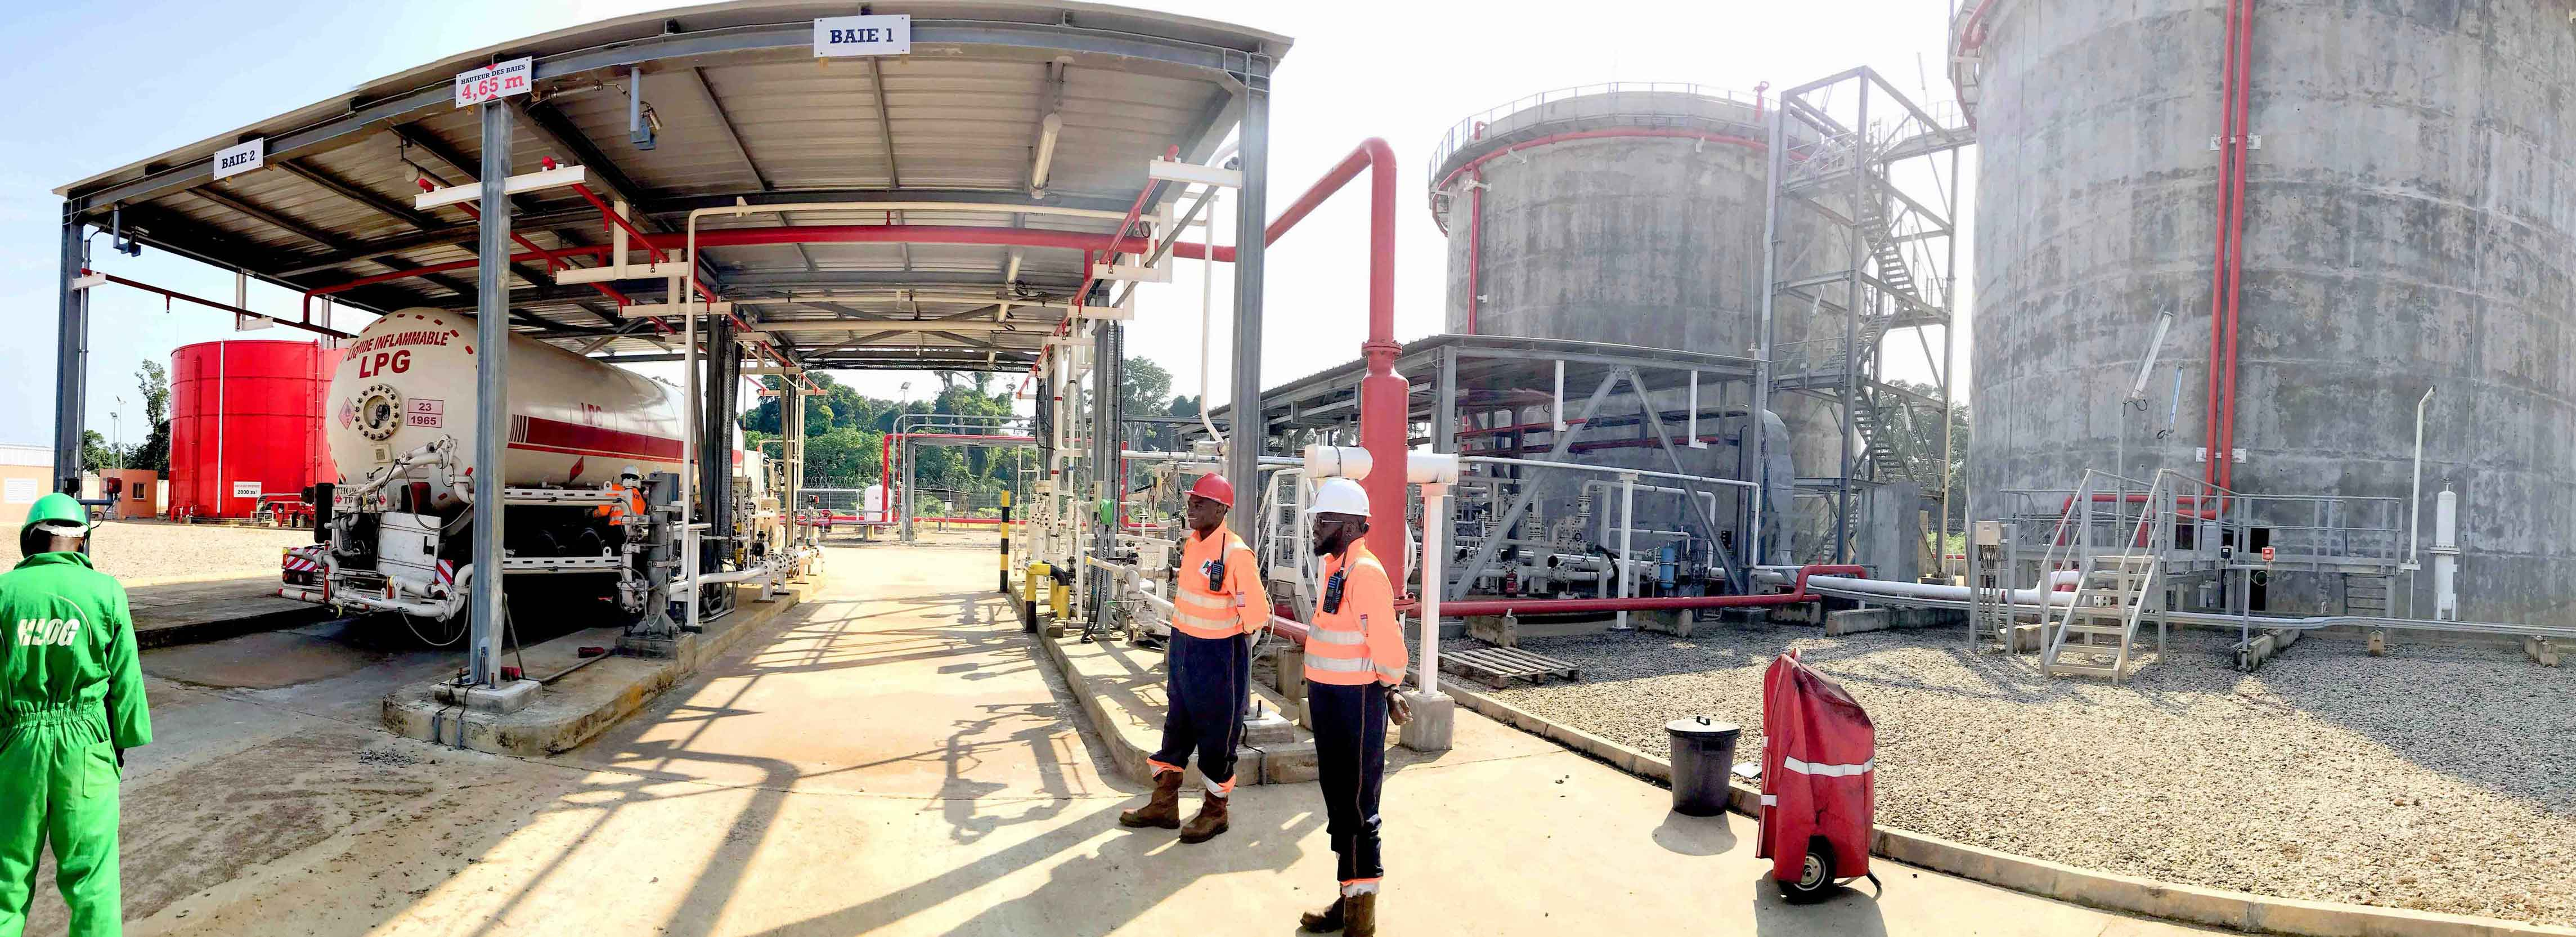 The LPG depot's contribution lauded by distribution companies